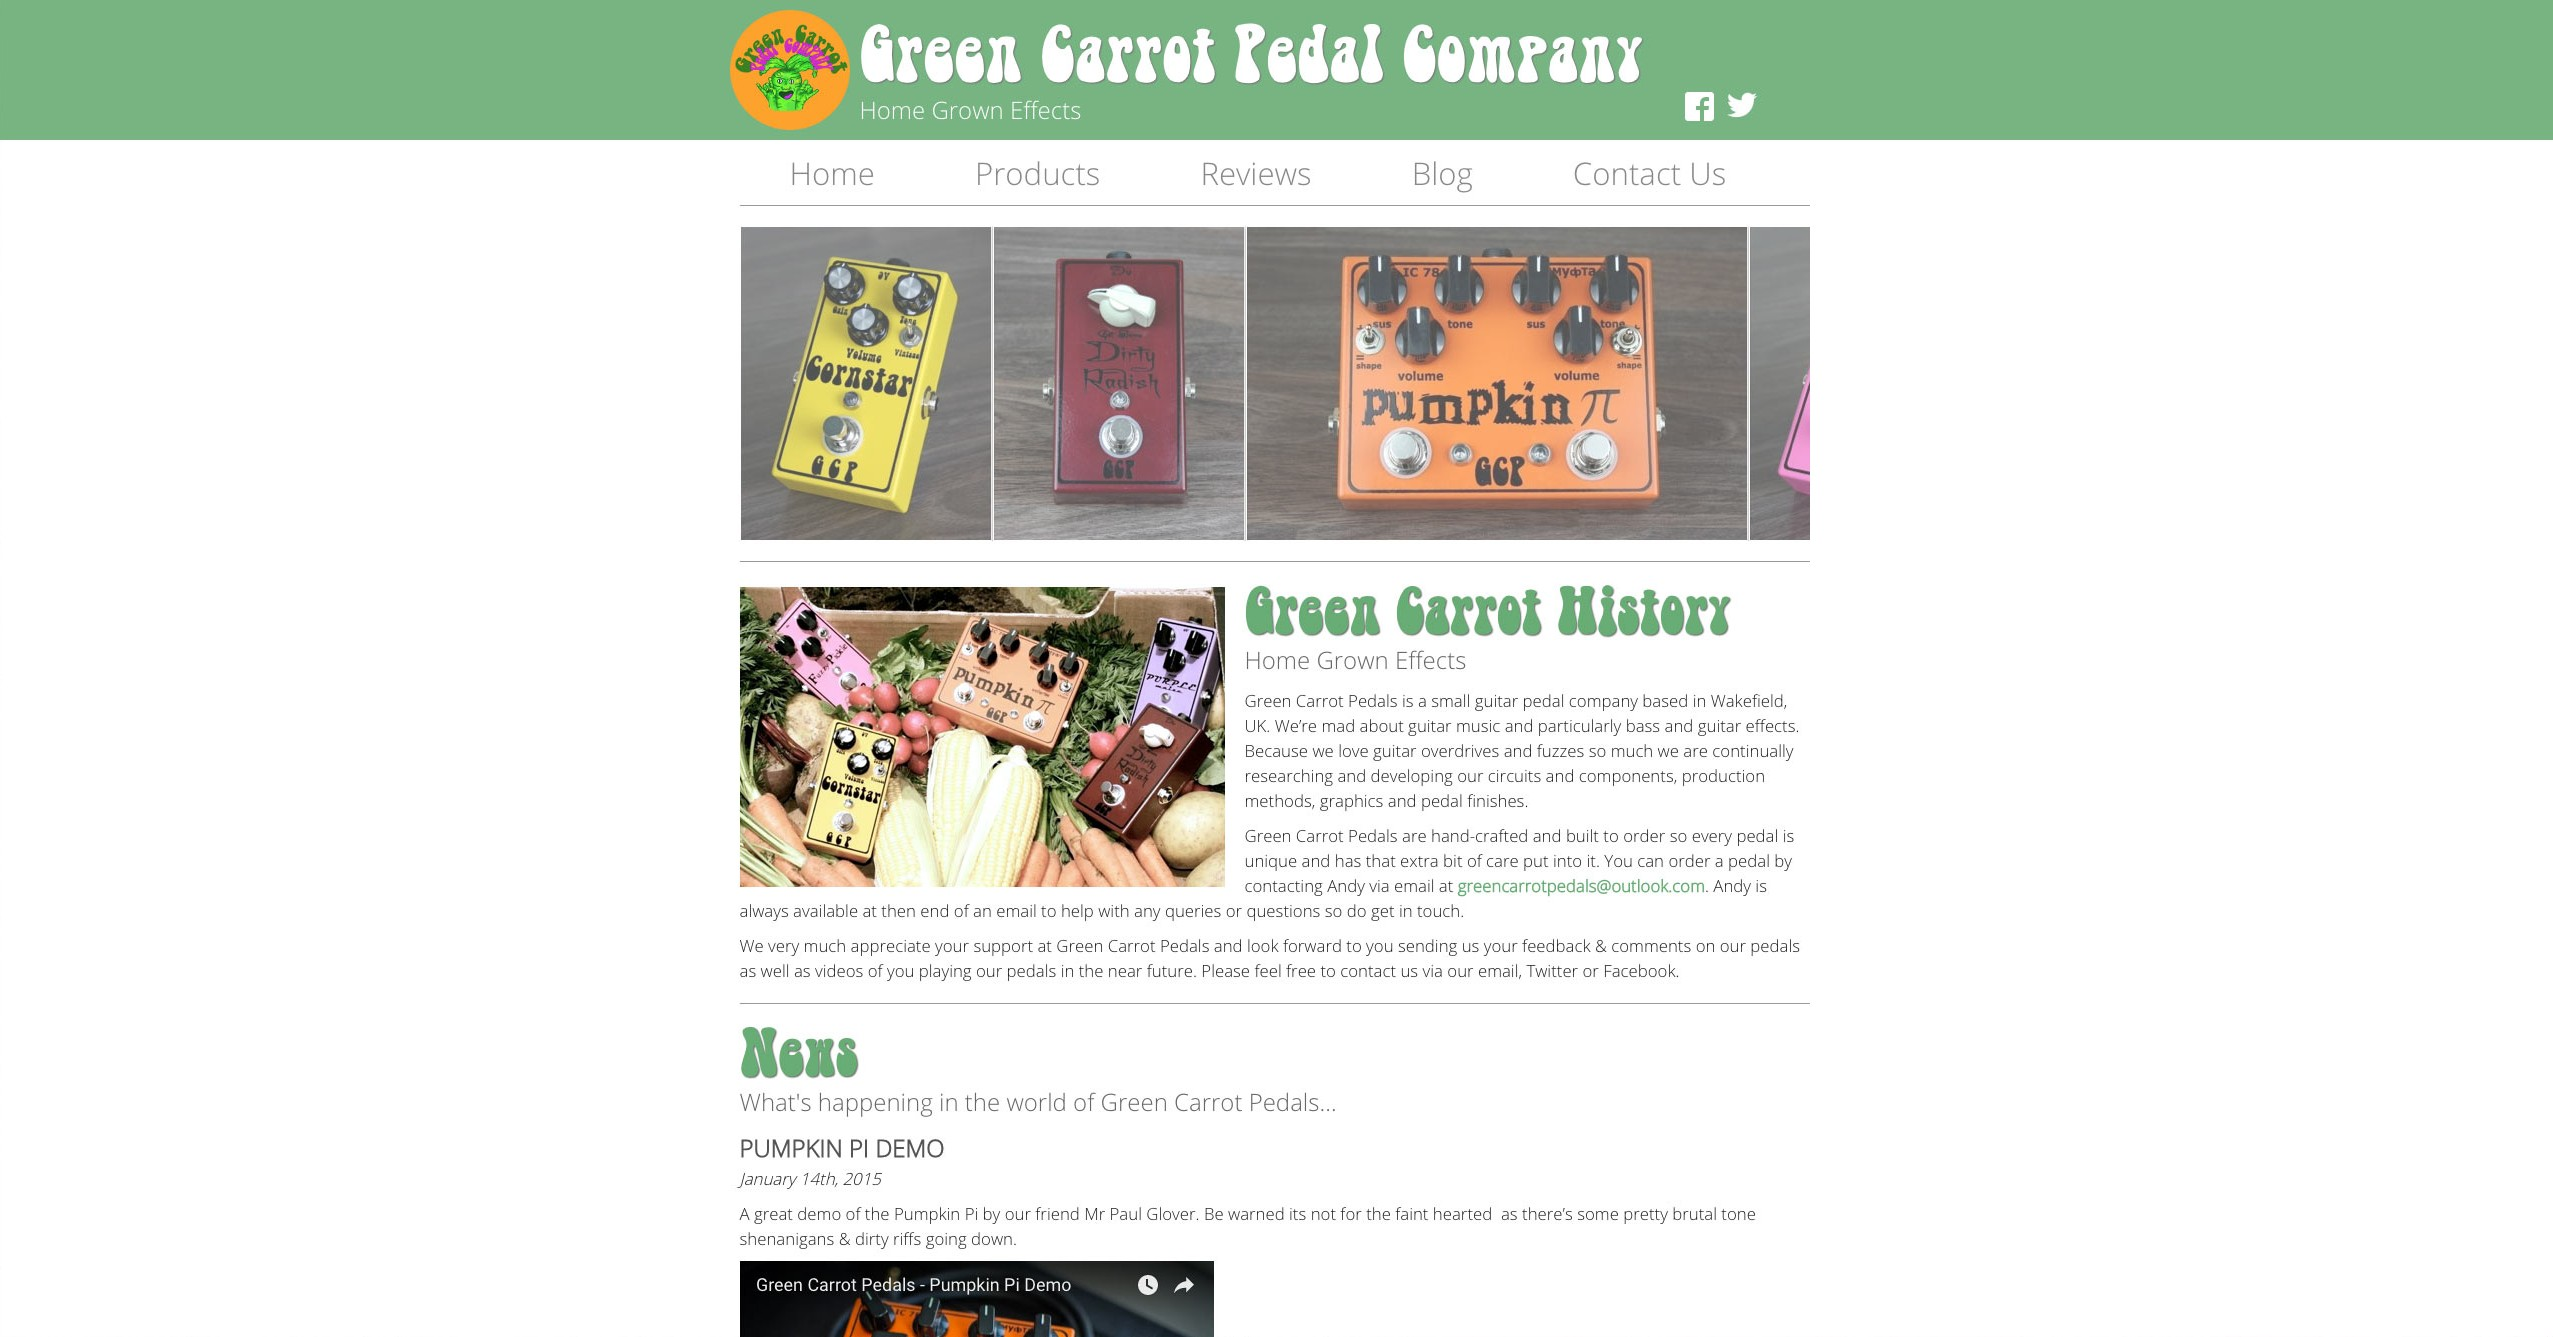 Green Carrot Pedal Company